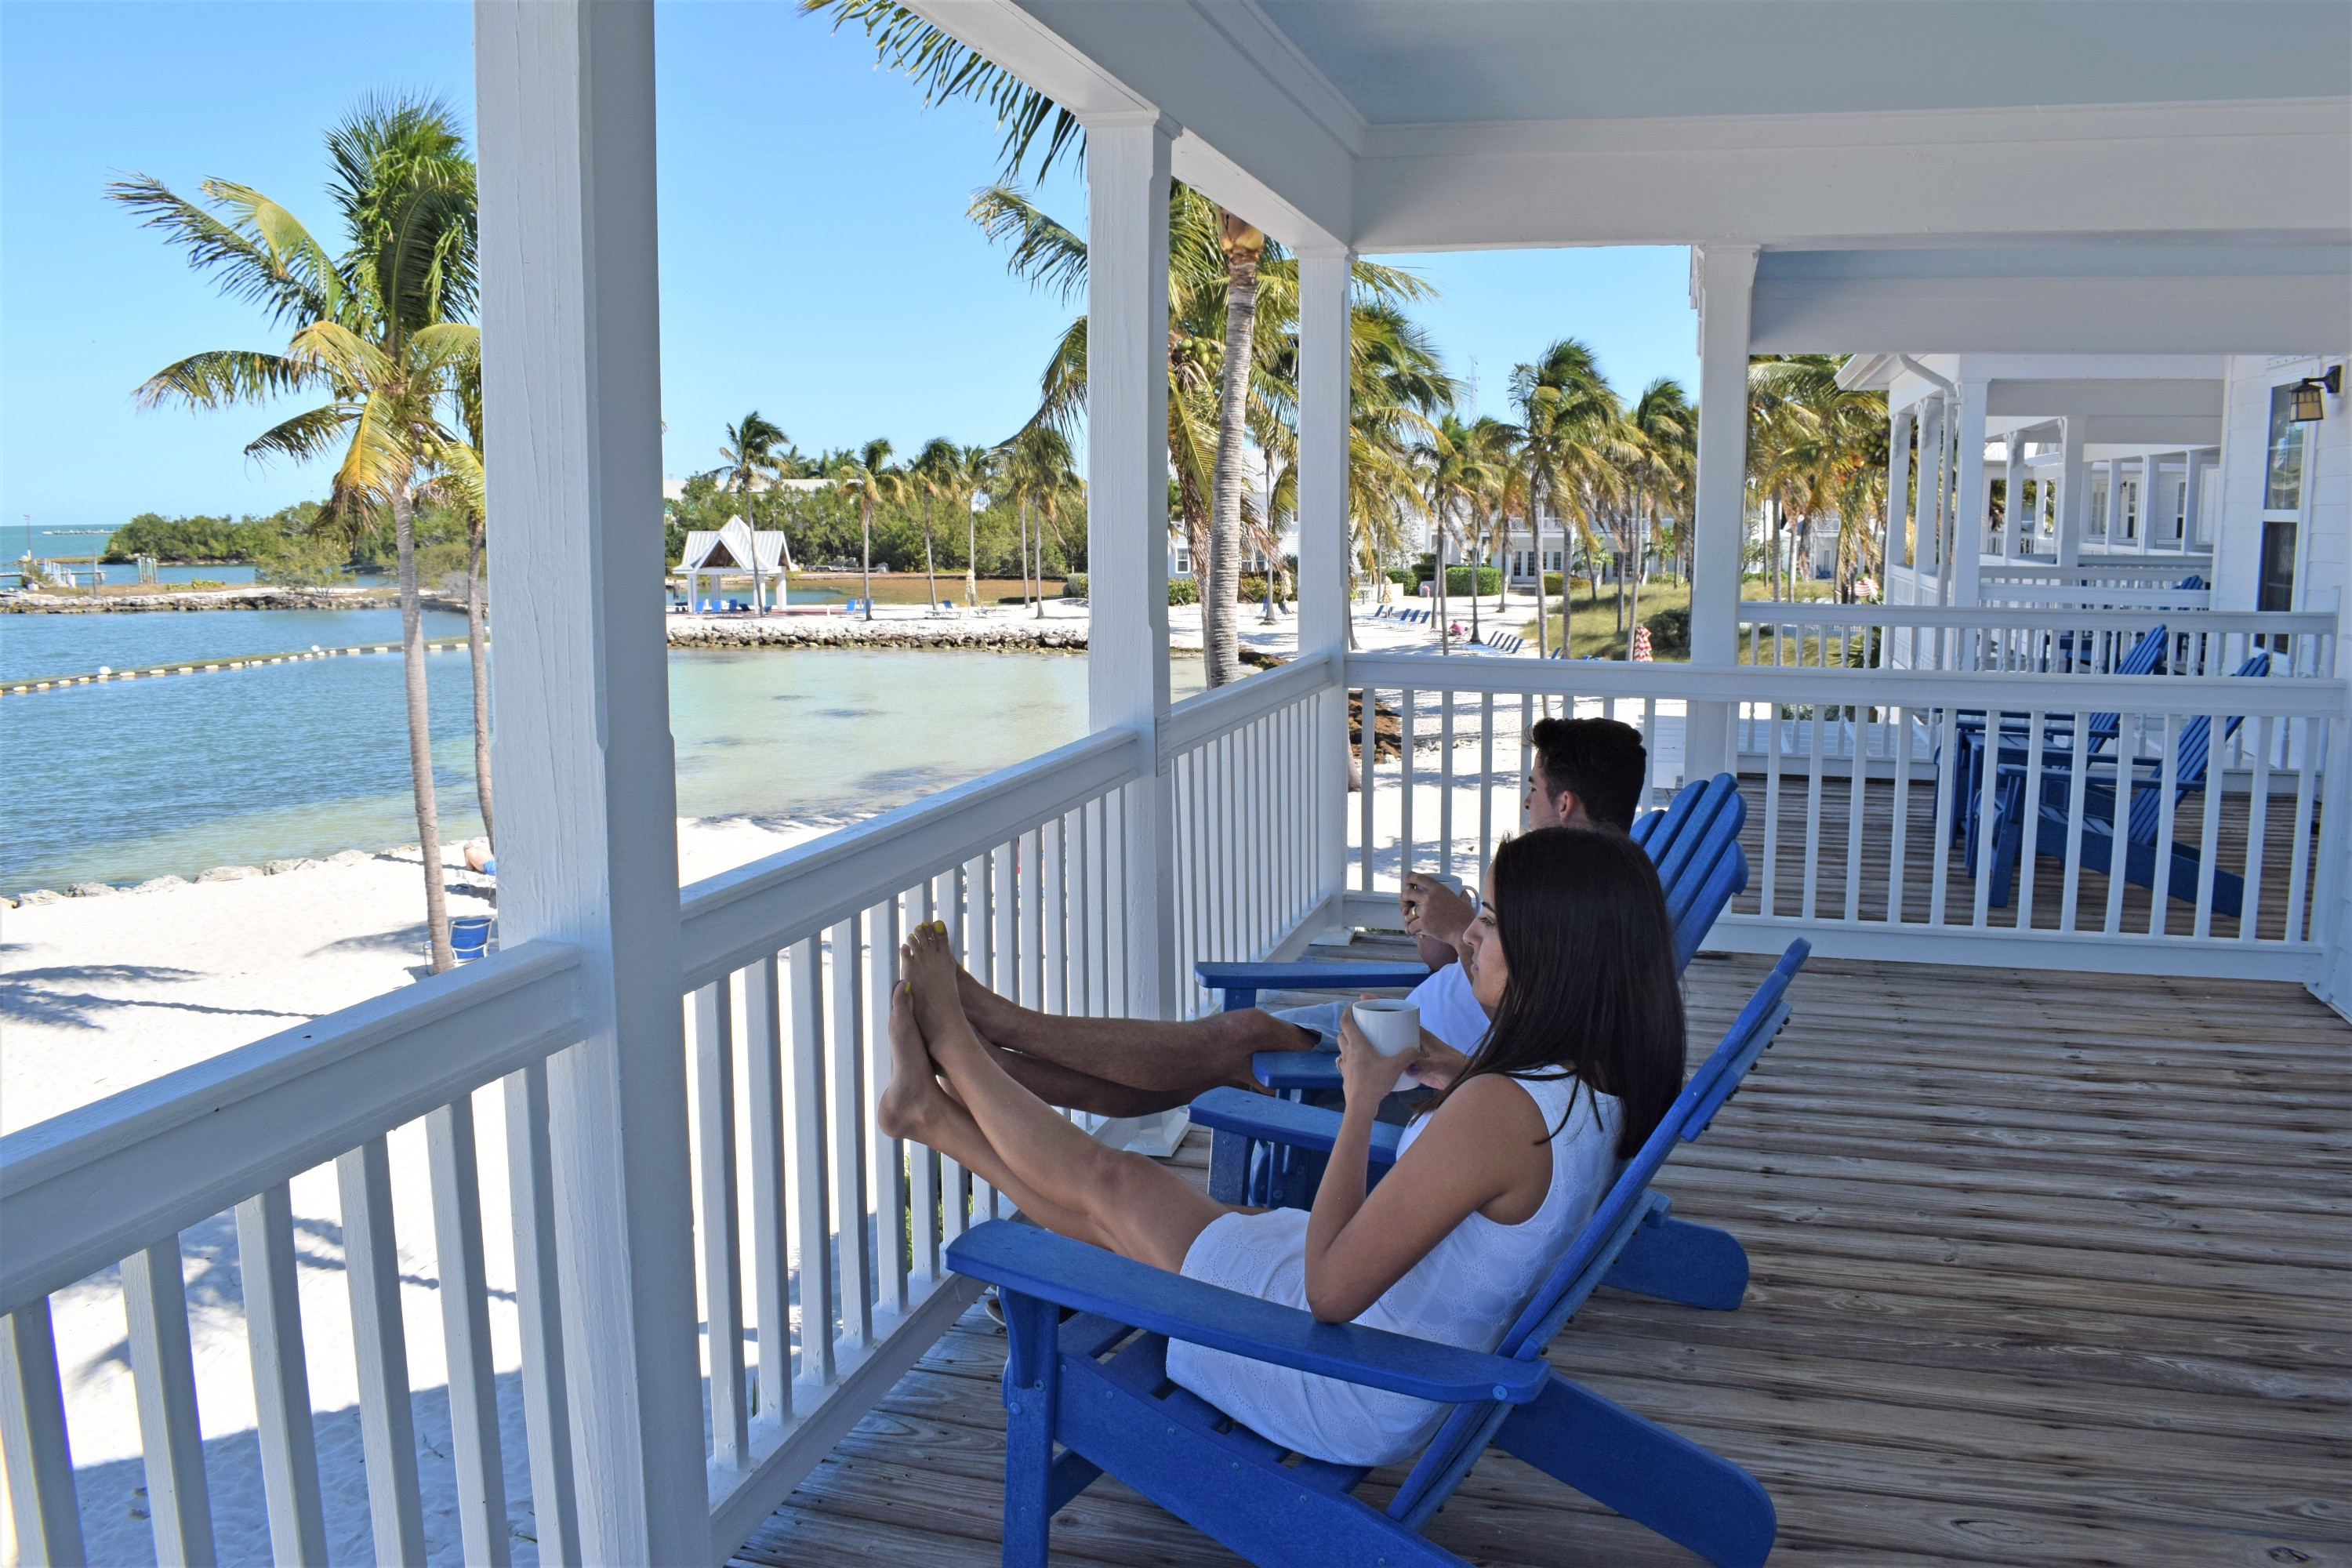 Couple relaxing on balcony overlooking Gulf of Mexico at Tranquility Bay